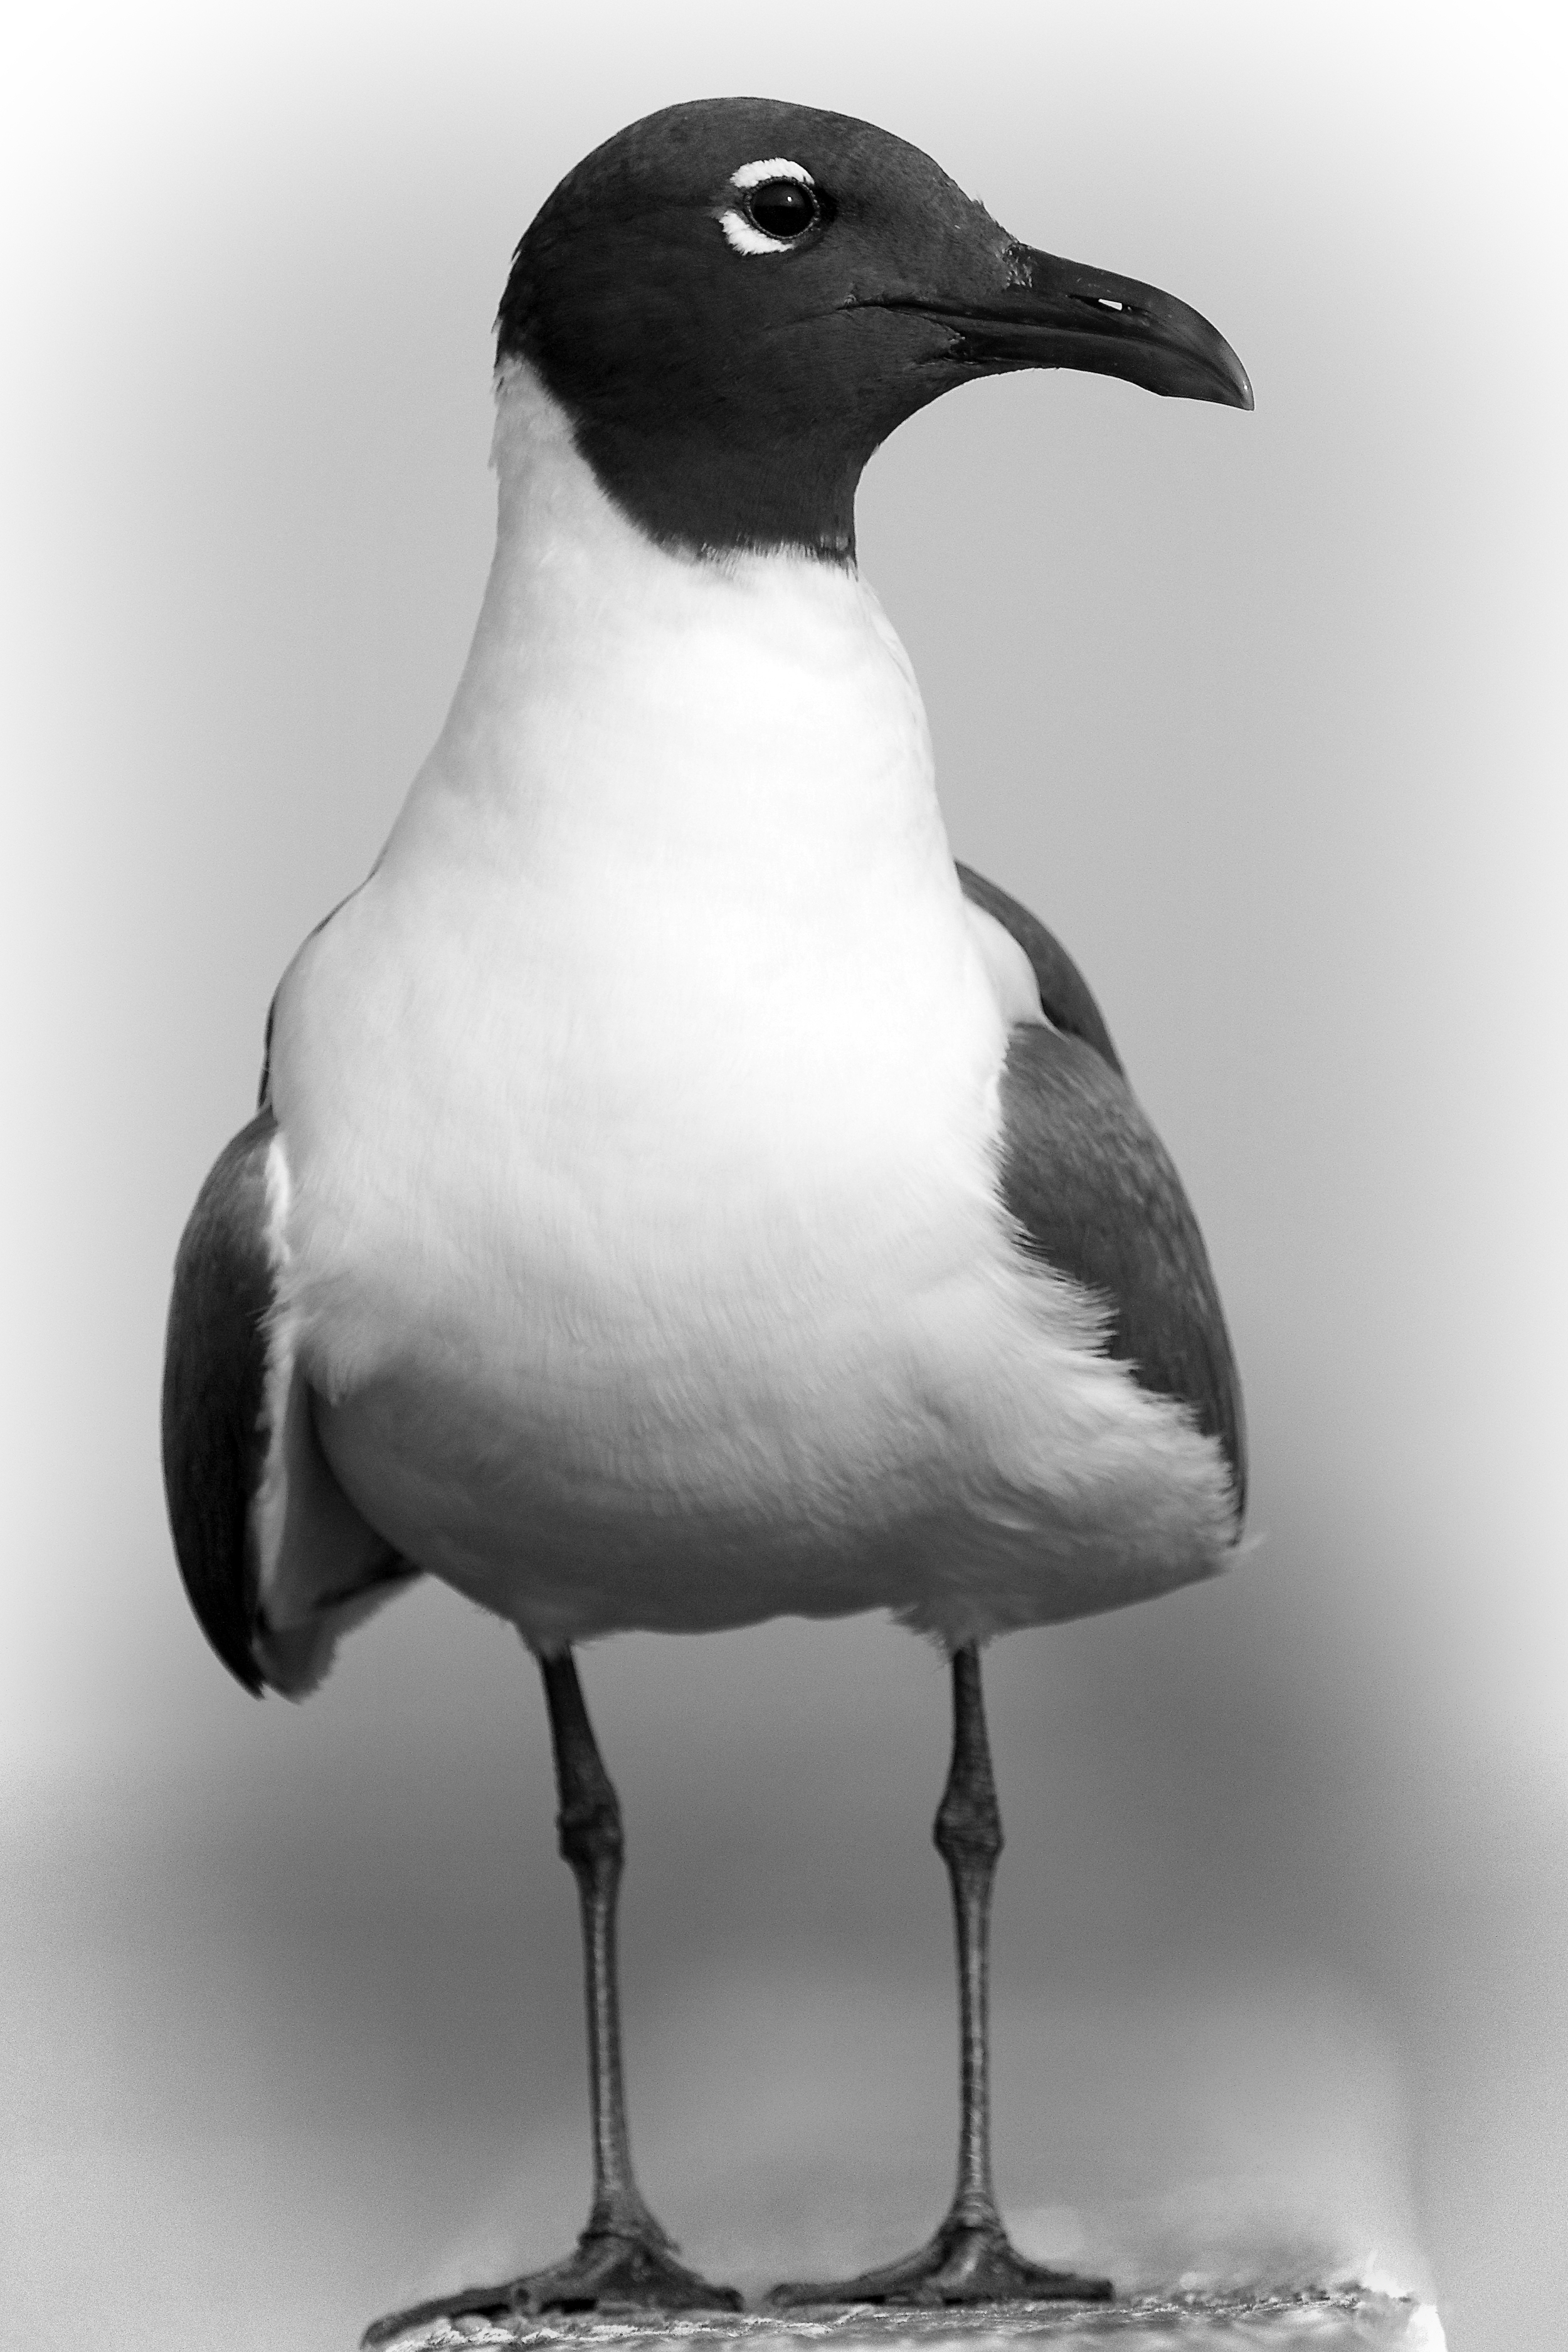 The Laughing Gull is mostly shades of Black, Gray and white.